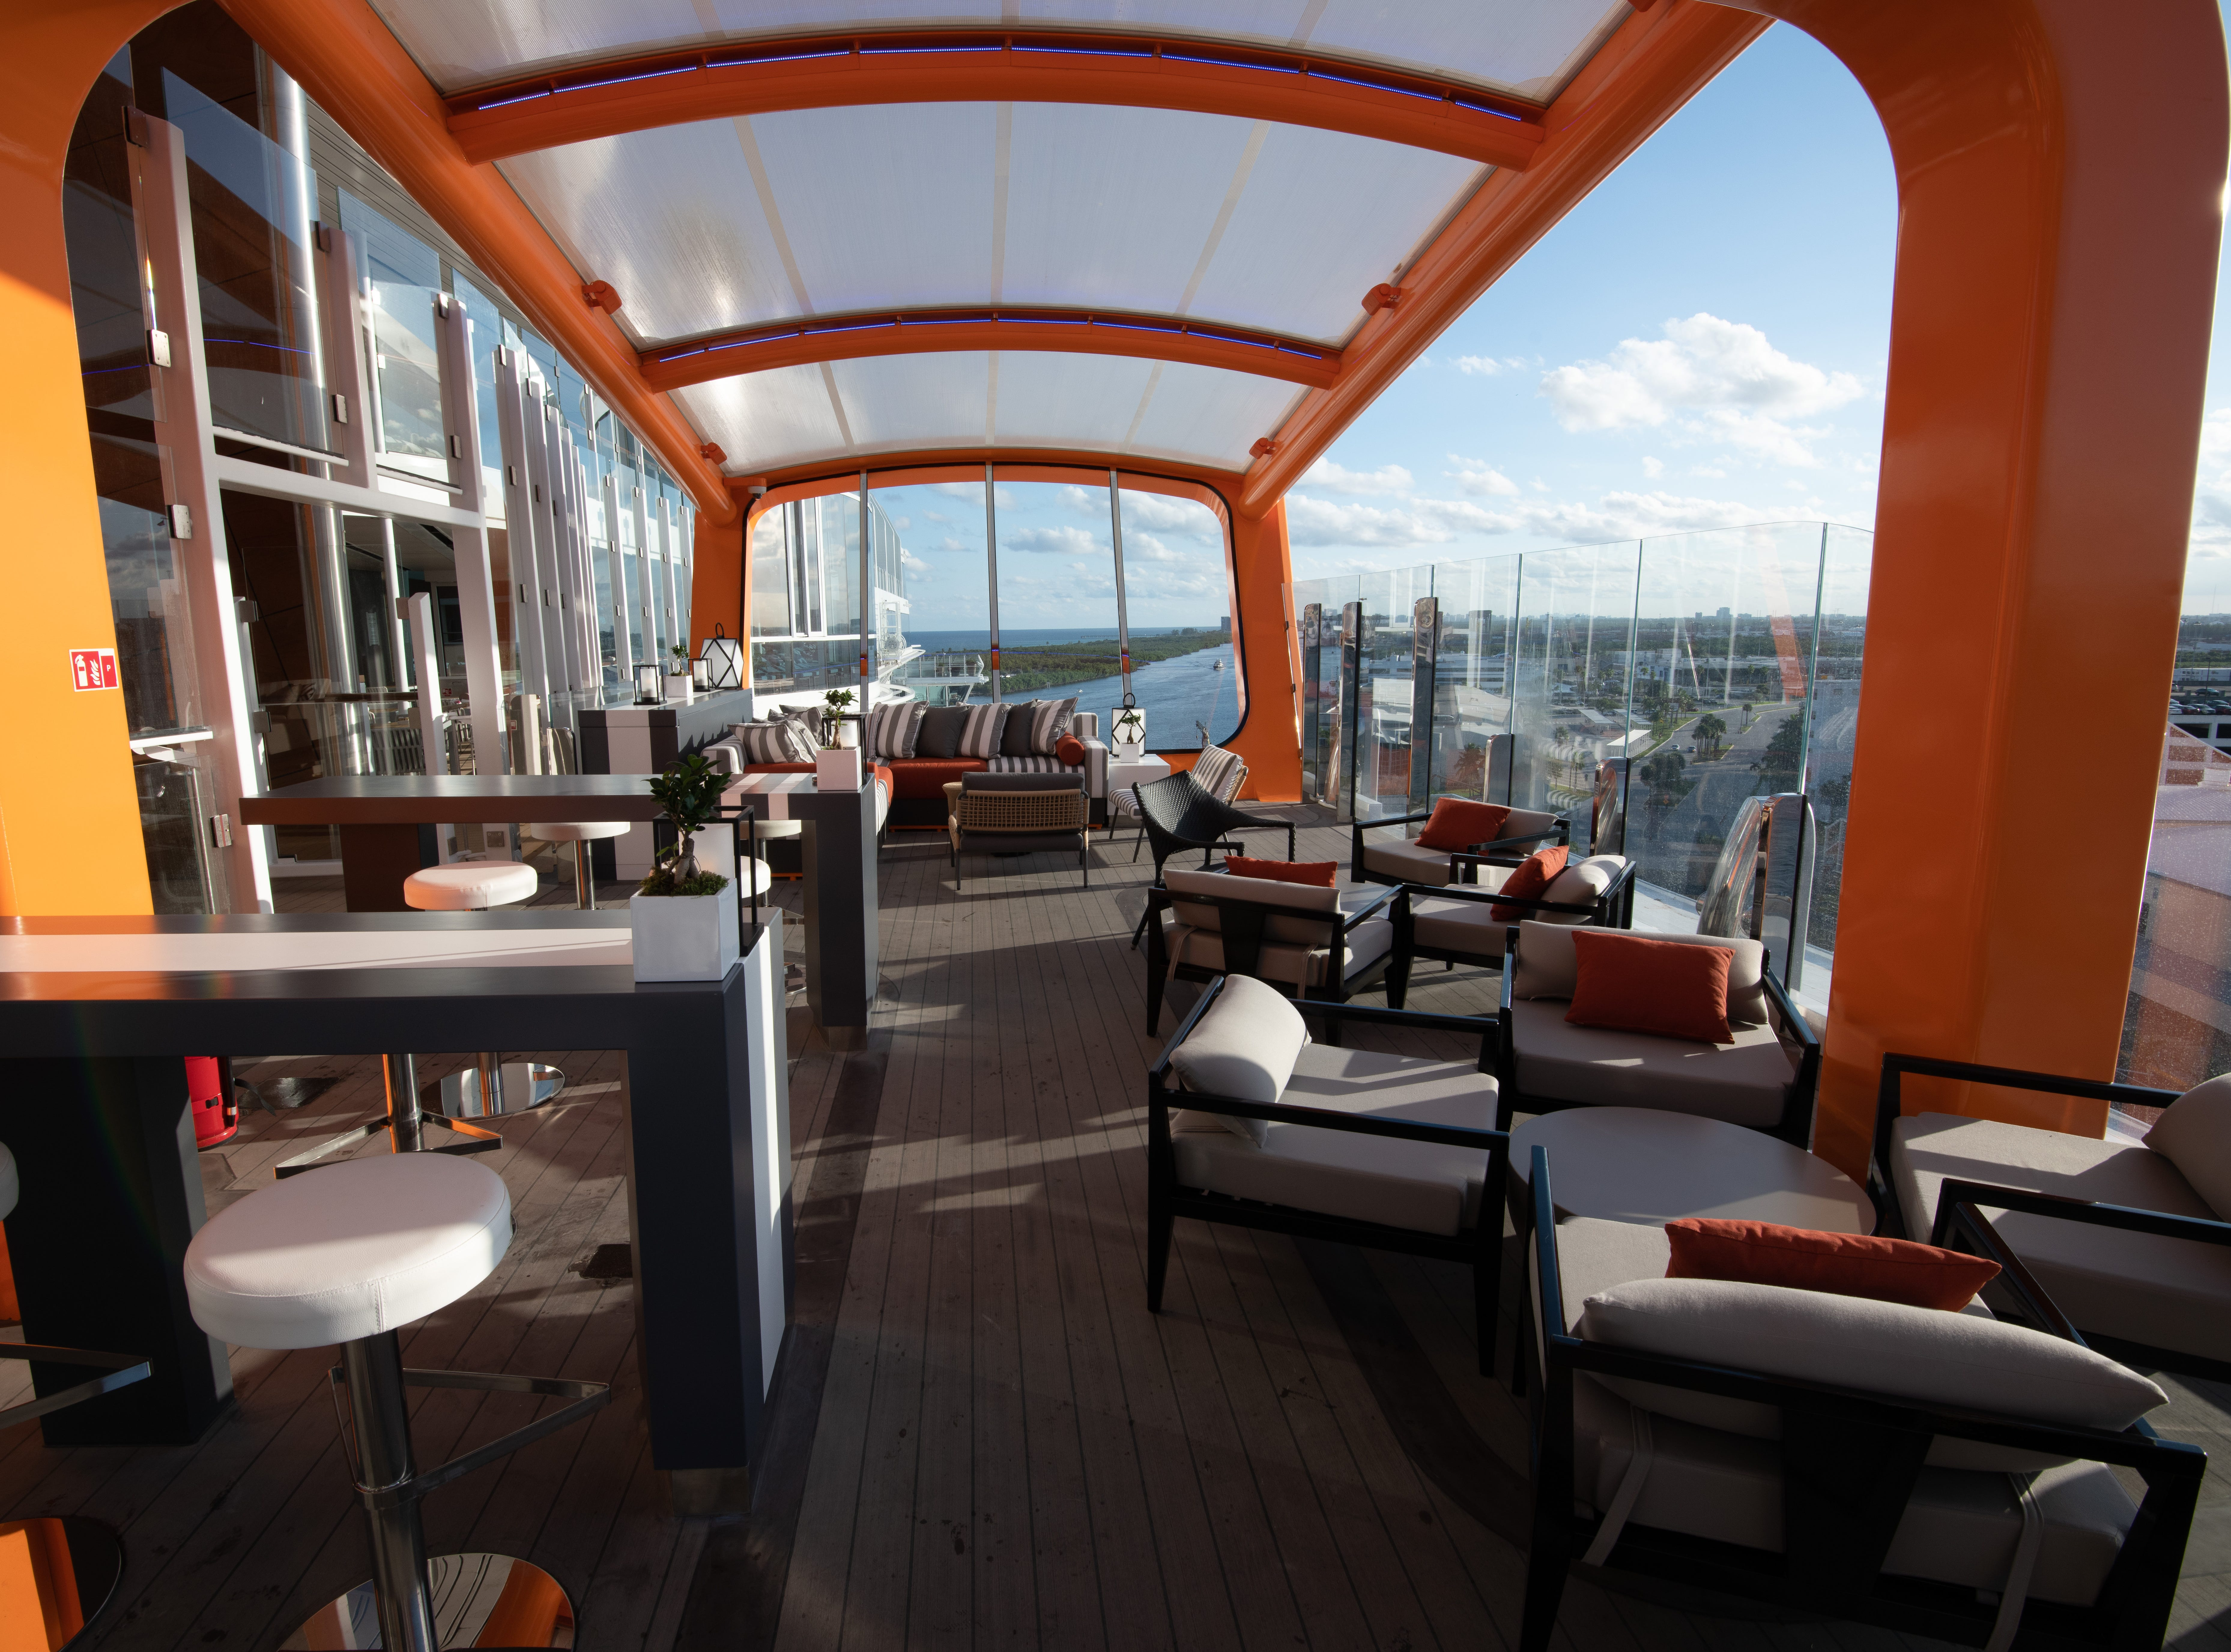 Shown here just off Deck 14, the tangerine-colored Magic Carpet moves up and down the side of Celebrity Edge to serve multiple functions. Among them: A lounge with some of the best views at sea.